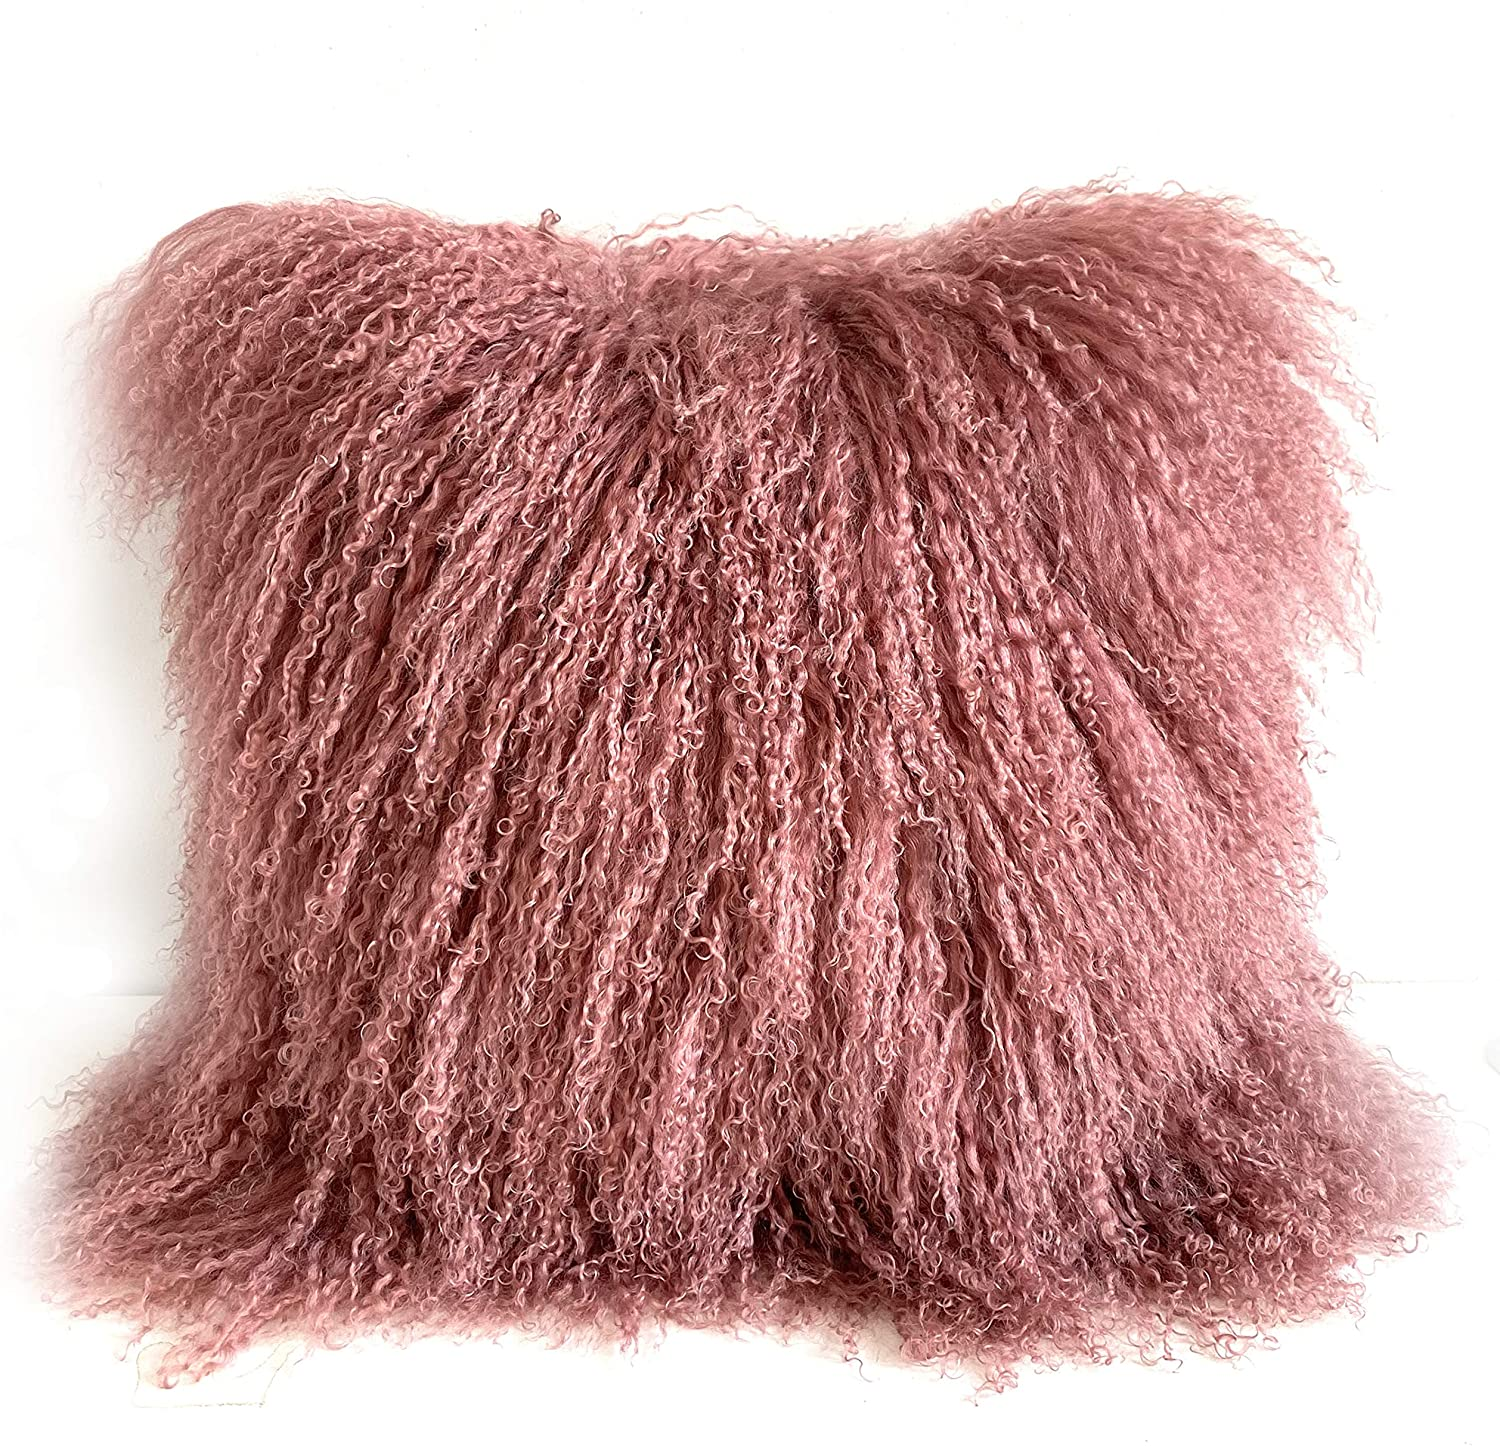 KumiQ 100% Real Mongolian Lamb Fur Curly Wool Pillow Cushion,Home Decorative Sheepskin Throw Pillow with Insert Included (Pink Mauve, 18x18 Inch)